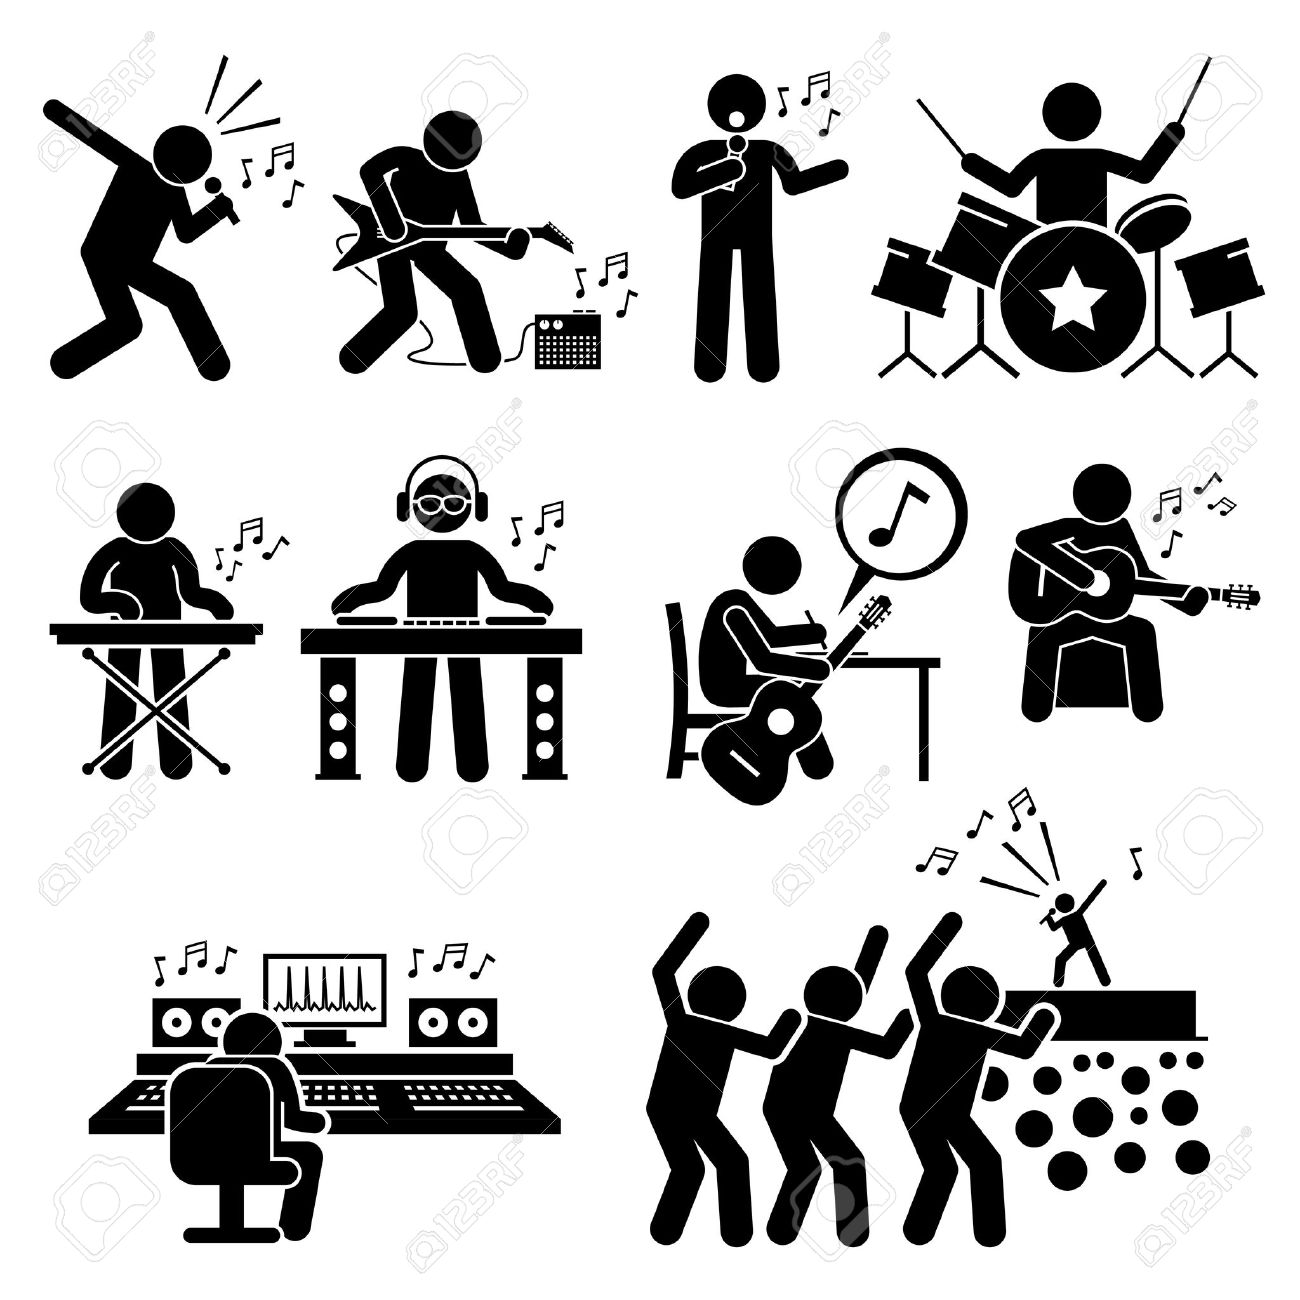 Rock Star Musician Music Artist with Musical Instruments Stick Figure Pictogram Icons - 55079162